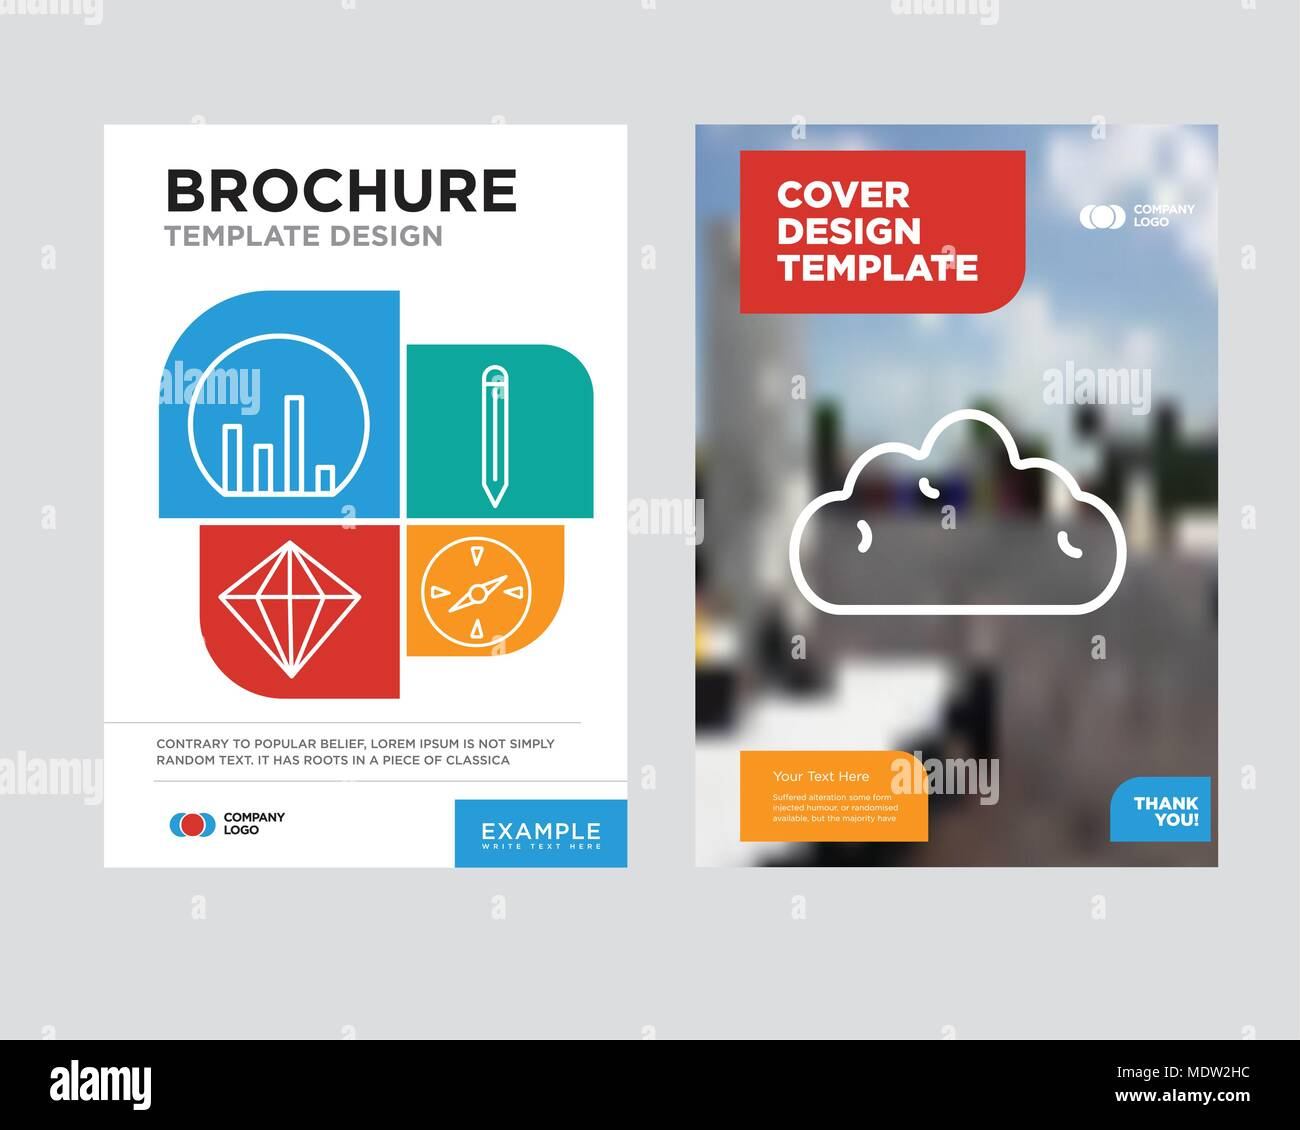 cloud brochure flyer design template with abstract photo background